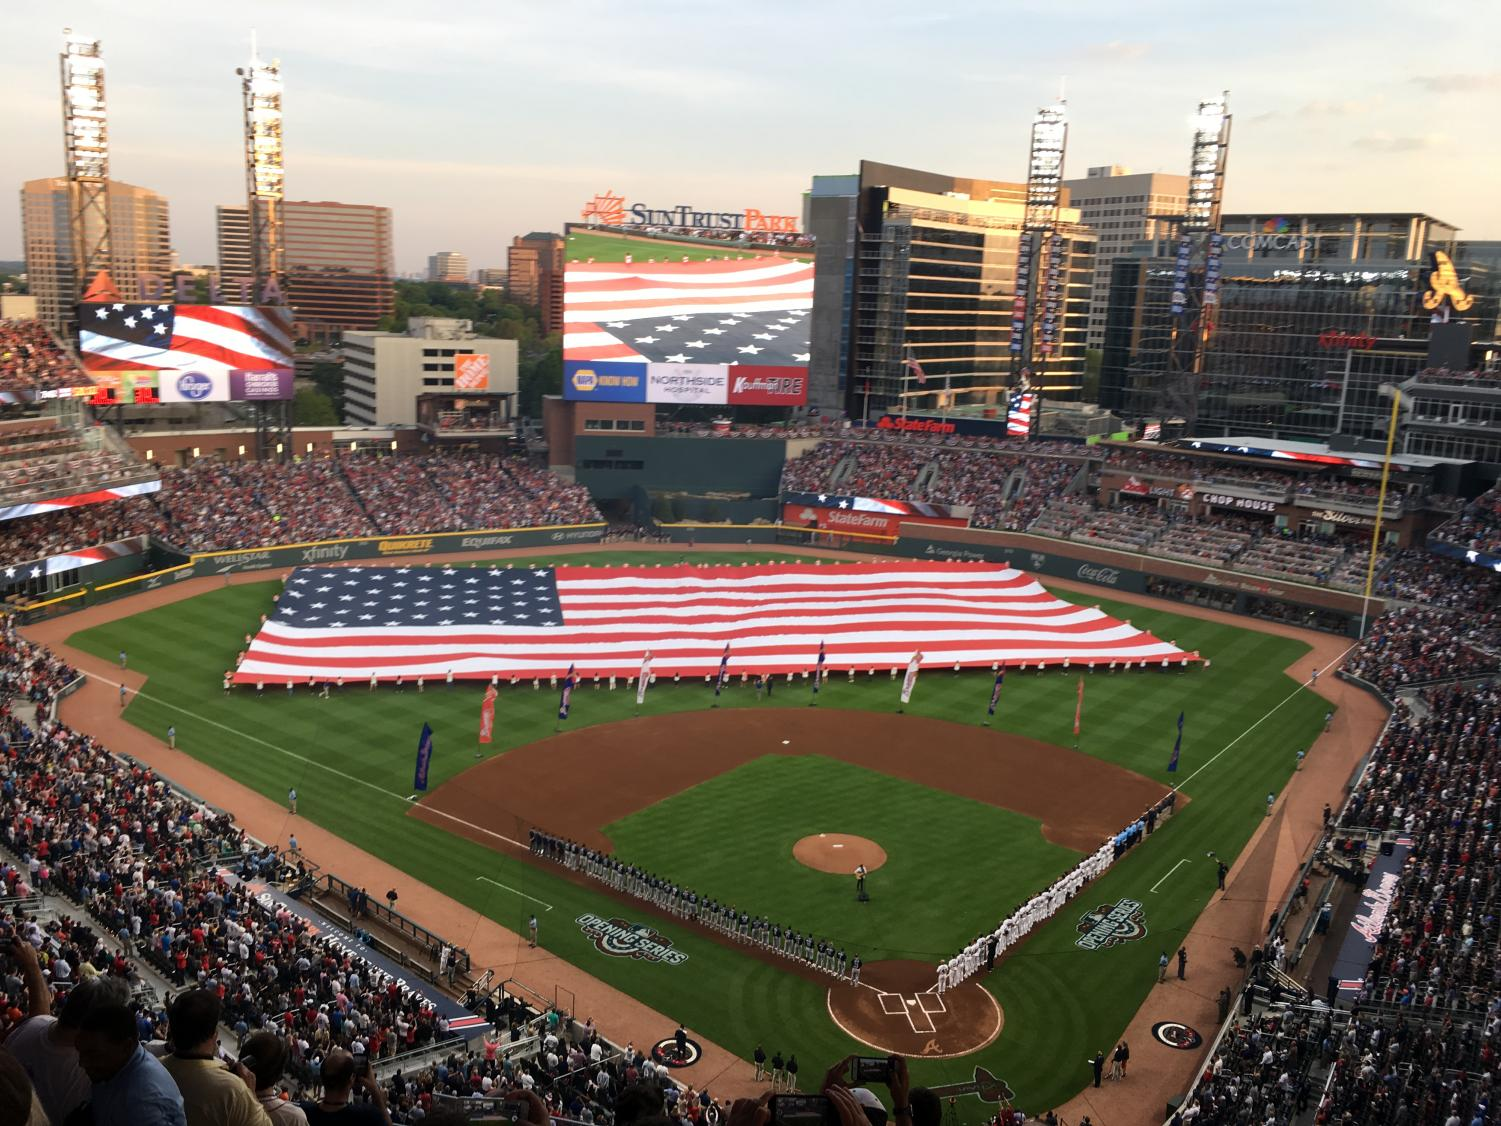 Atlanta Braves at home on Opening Day